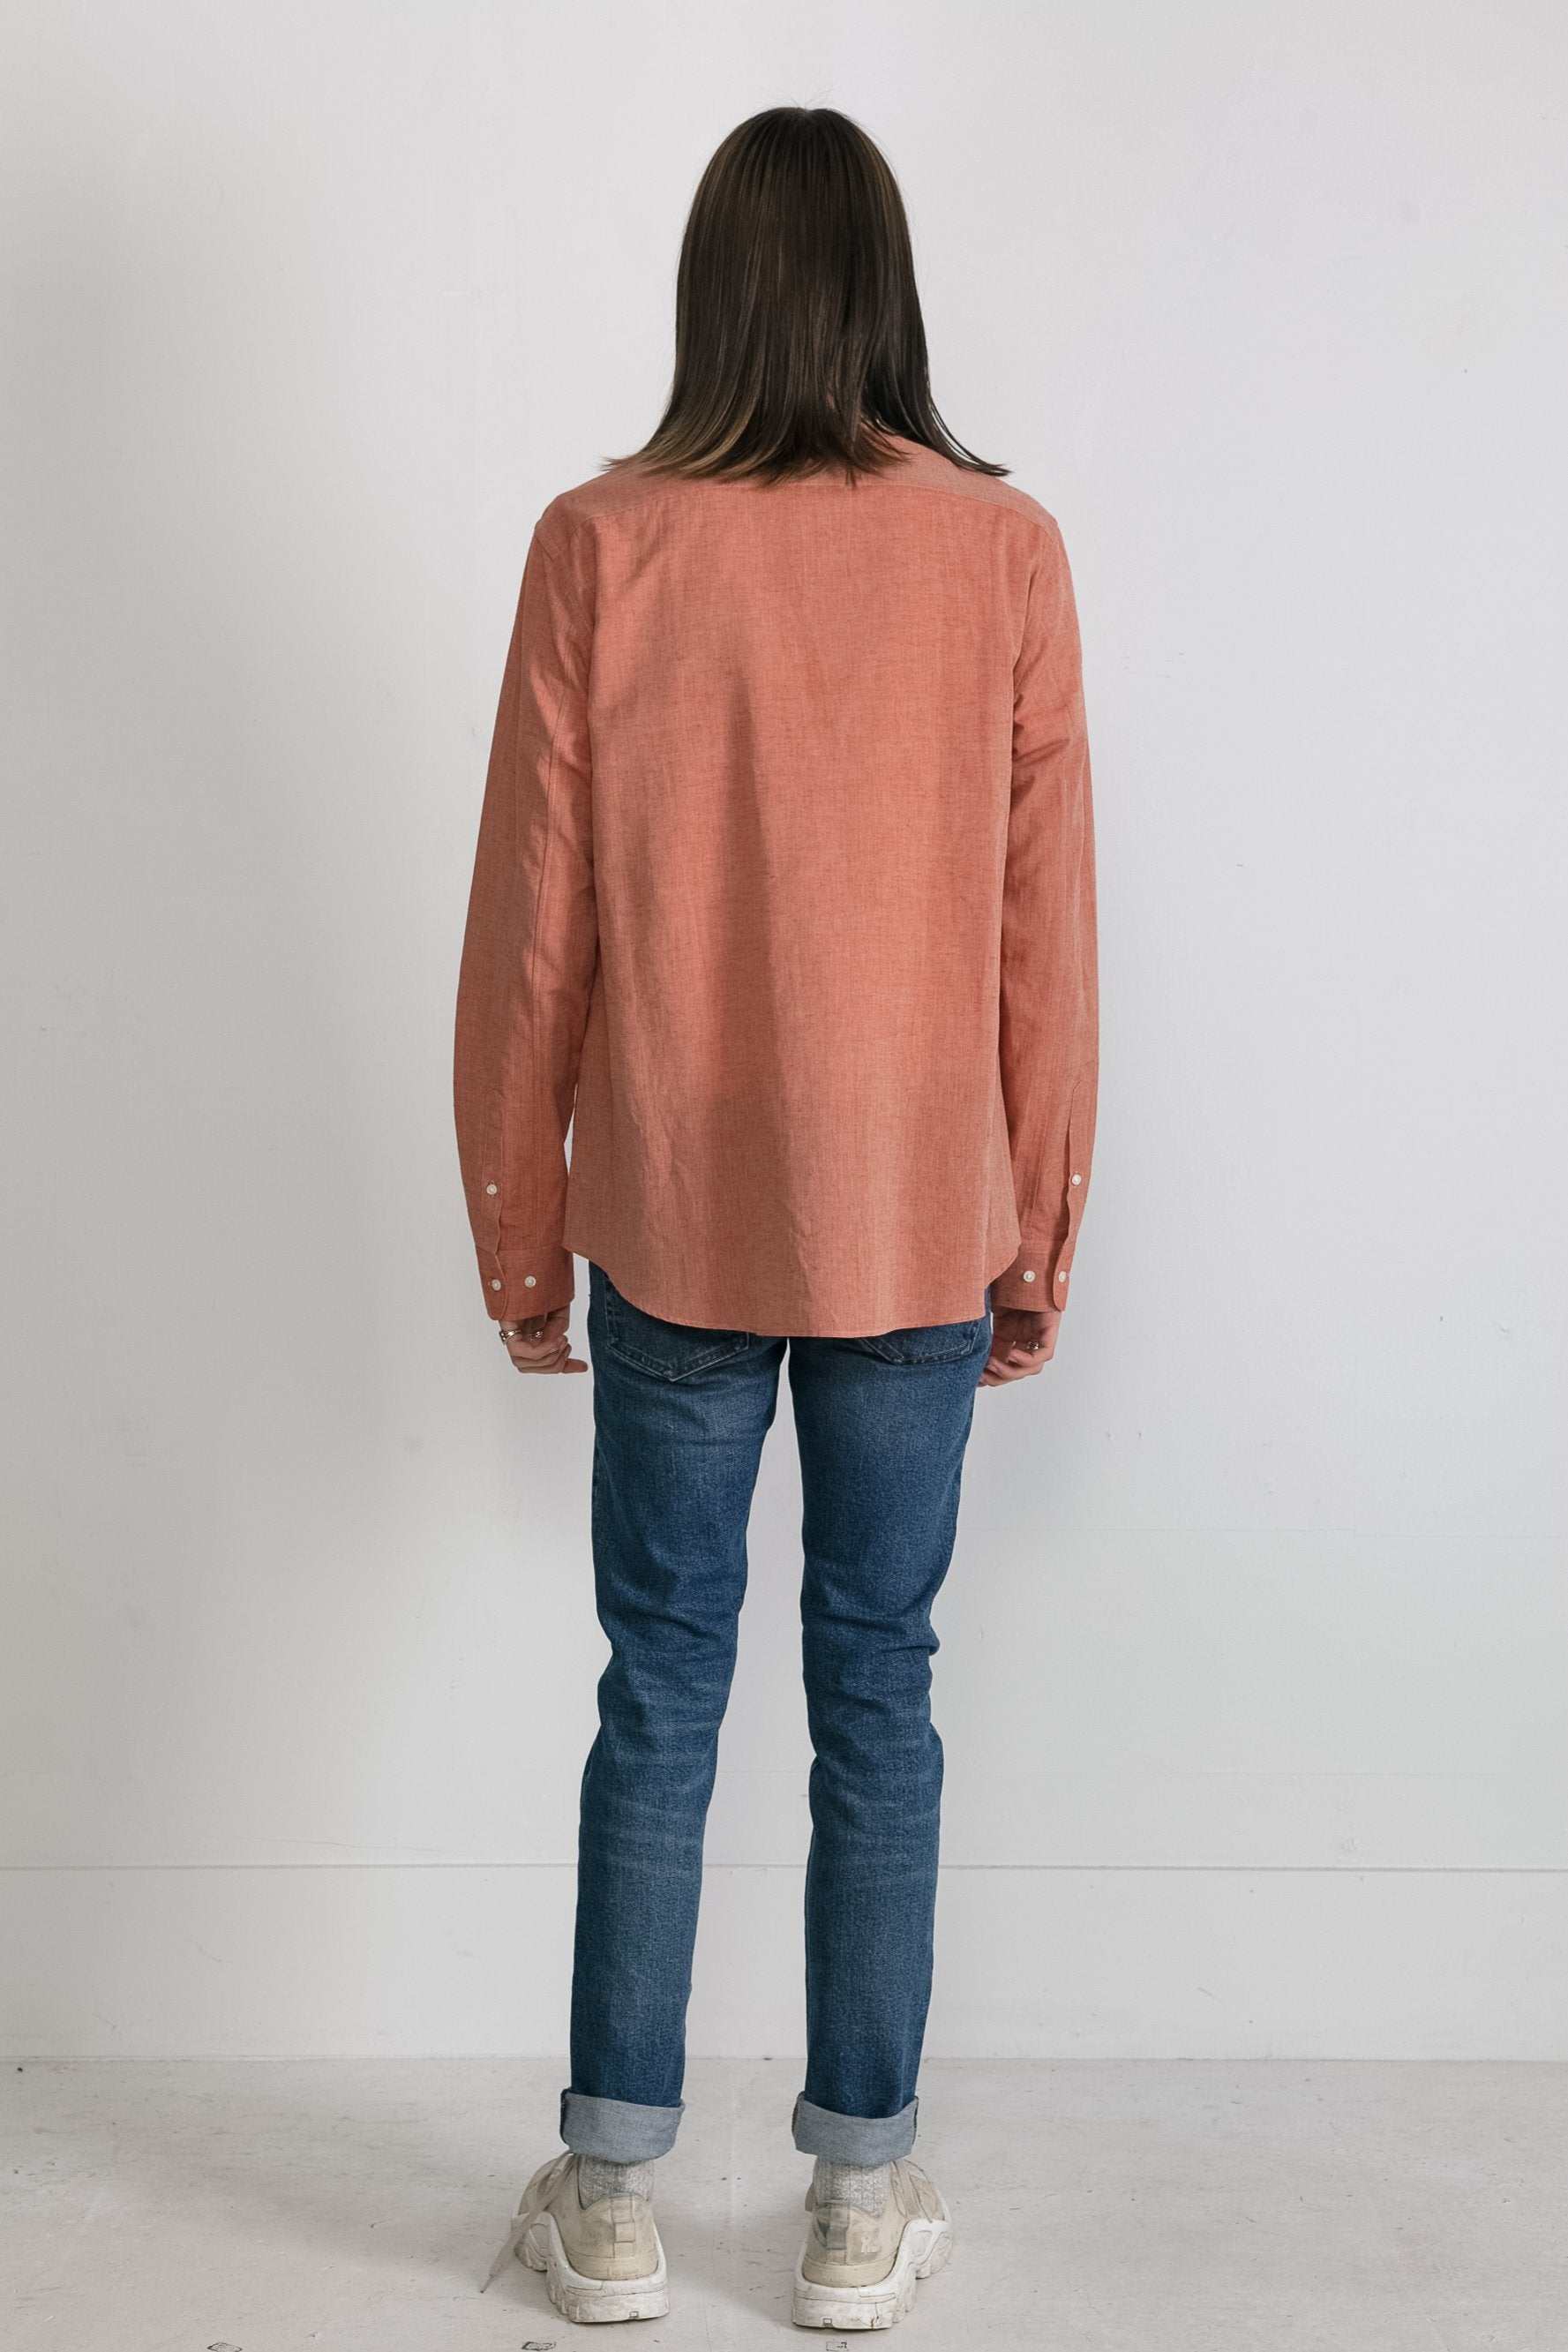 japanese-natural-chambray-in-red 03